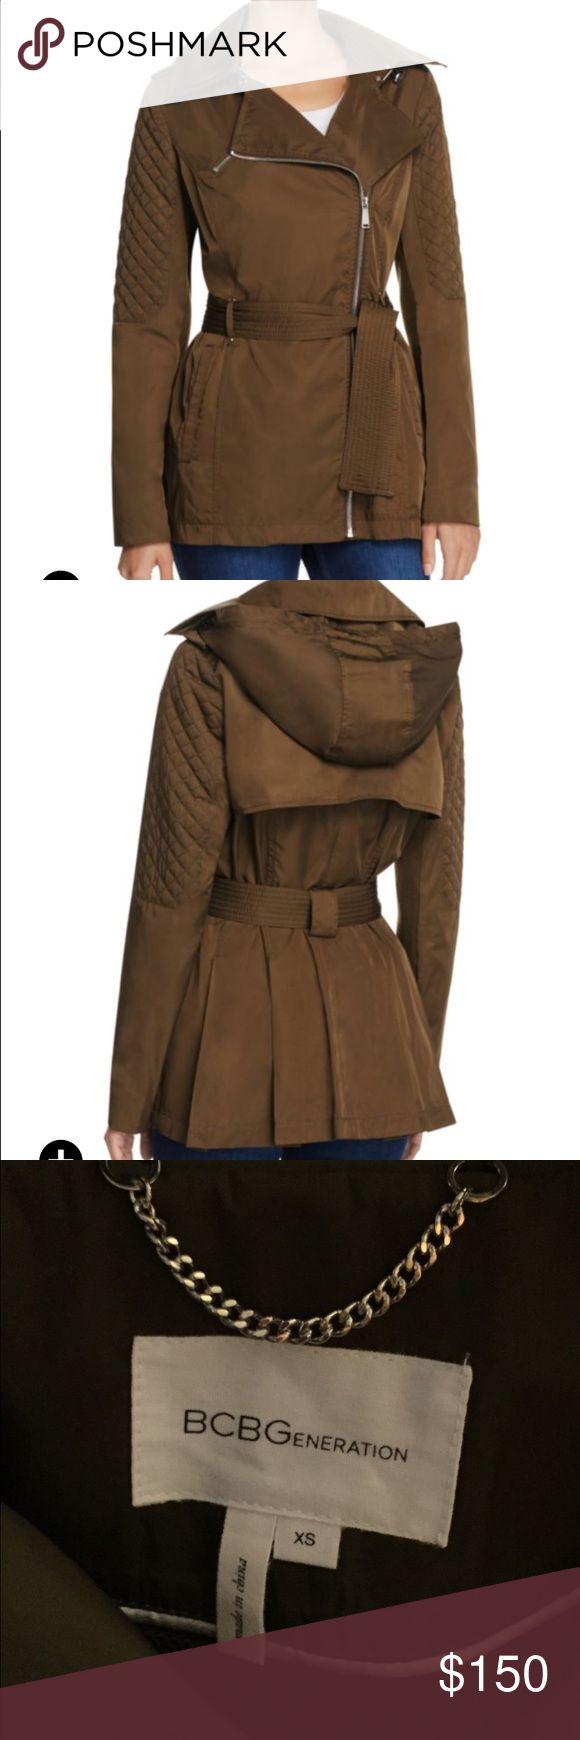 Bcbg coat Lightweight olive green bcbg coat with hood. Water resistant. Super cute!! BCBGeneration Jackets & Coats